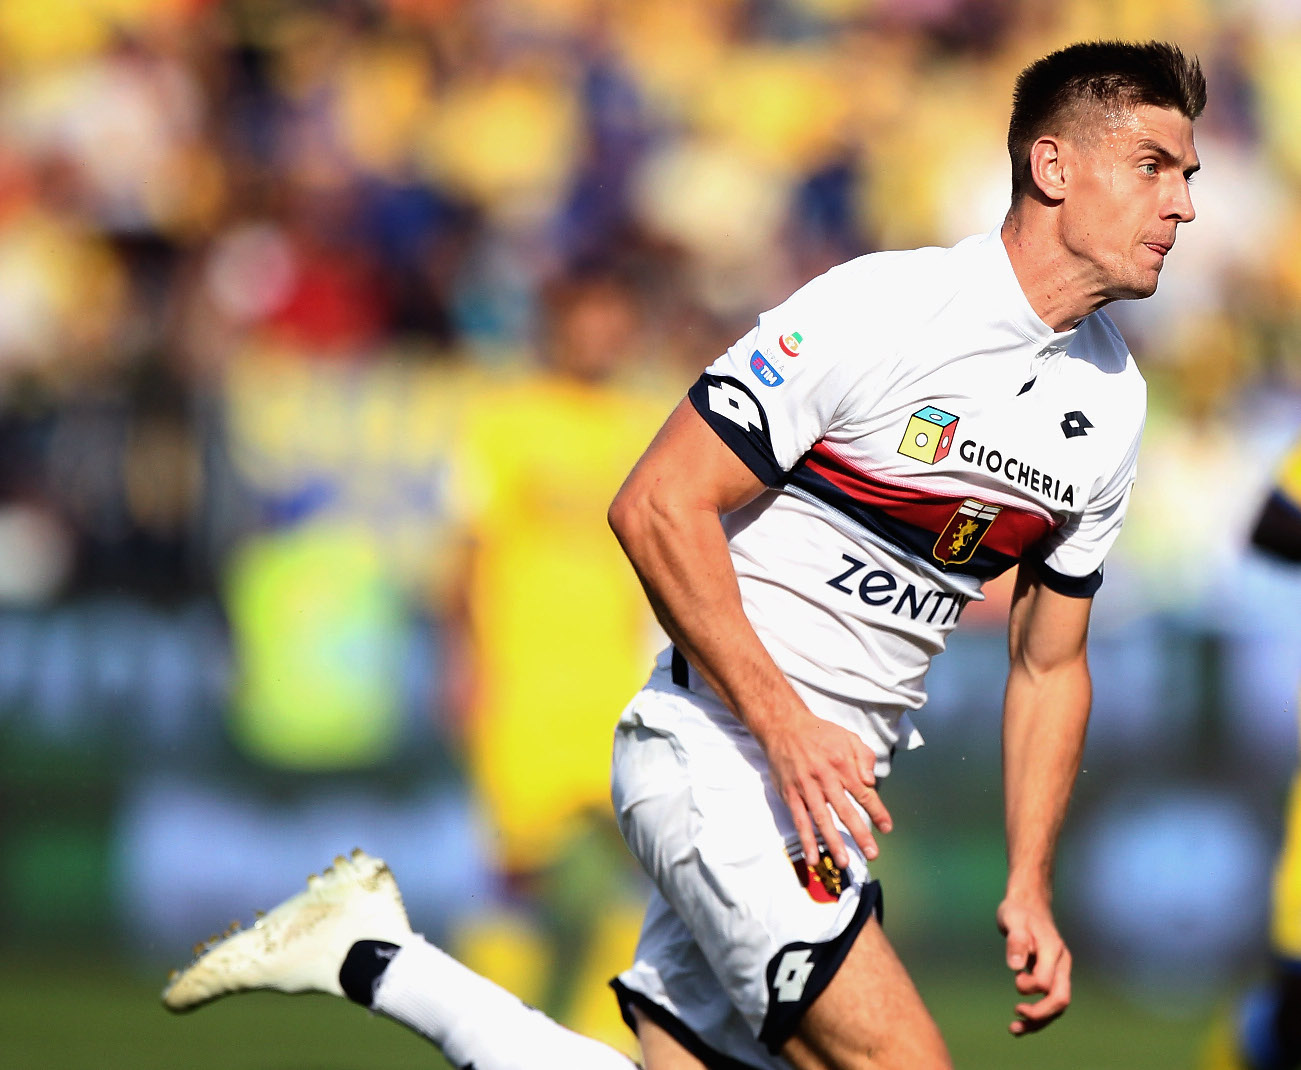 FROSINONE, ITALY - SEPTEMBER 30:  Krzysztof Piatek in action during the Serie A match between Frosinone Calcio and Genoa CFC at Stadio Benito Stirpe on September 30, 2018 in Frosinone, Italy.  (Photo by Paolo Bruno/Getty Images)